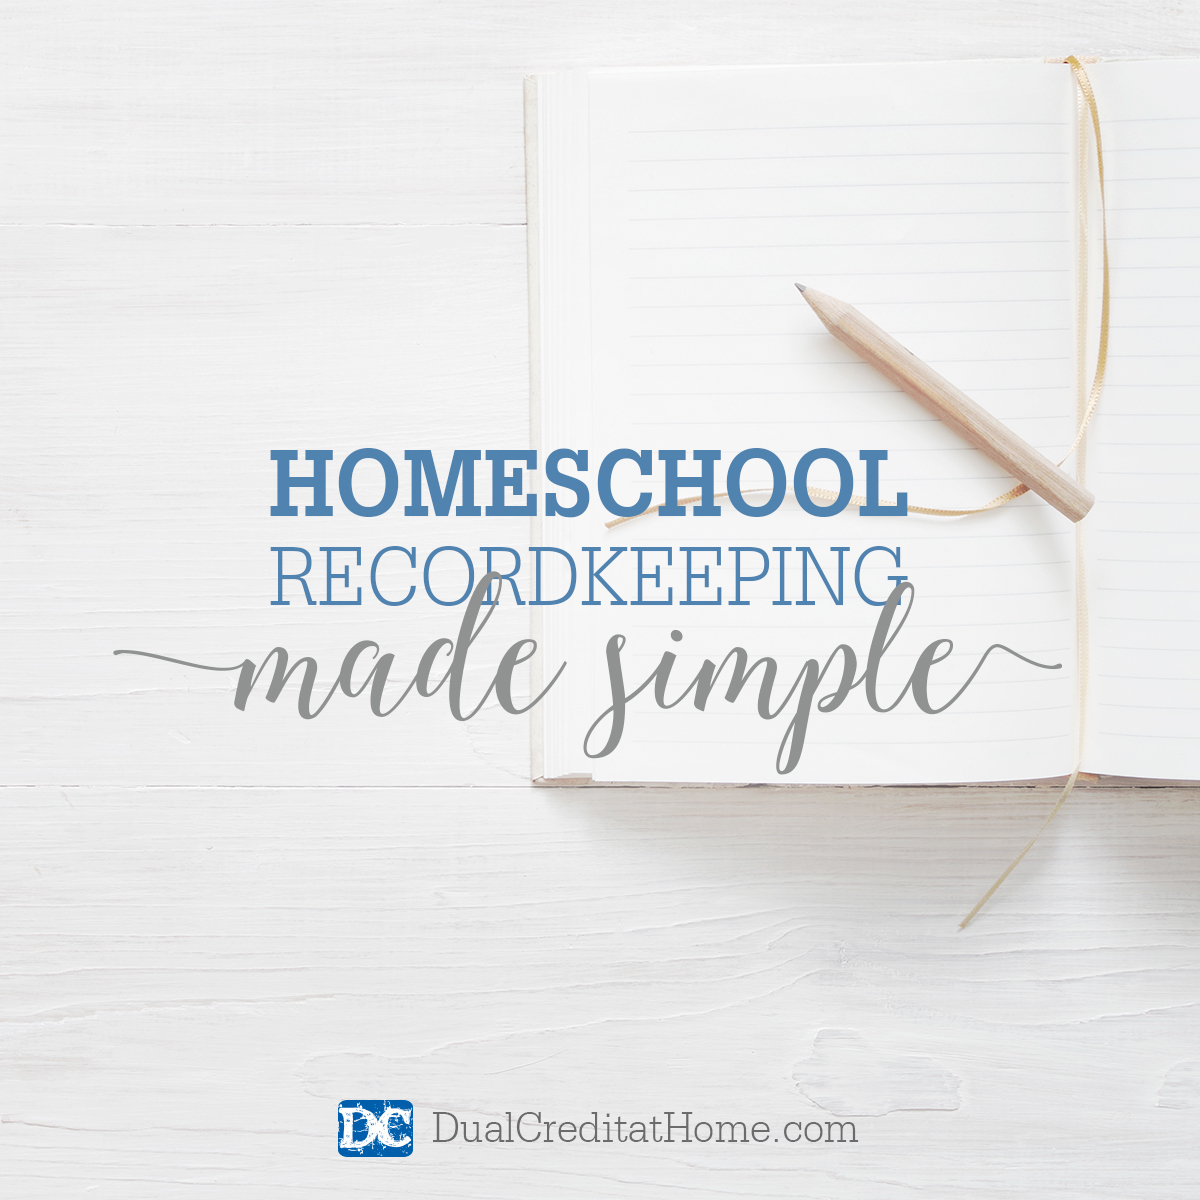 Homeschool Recordkeeping Made Simple